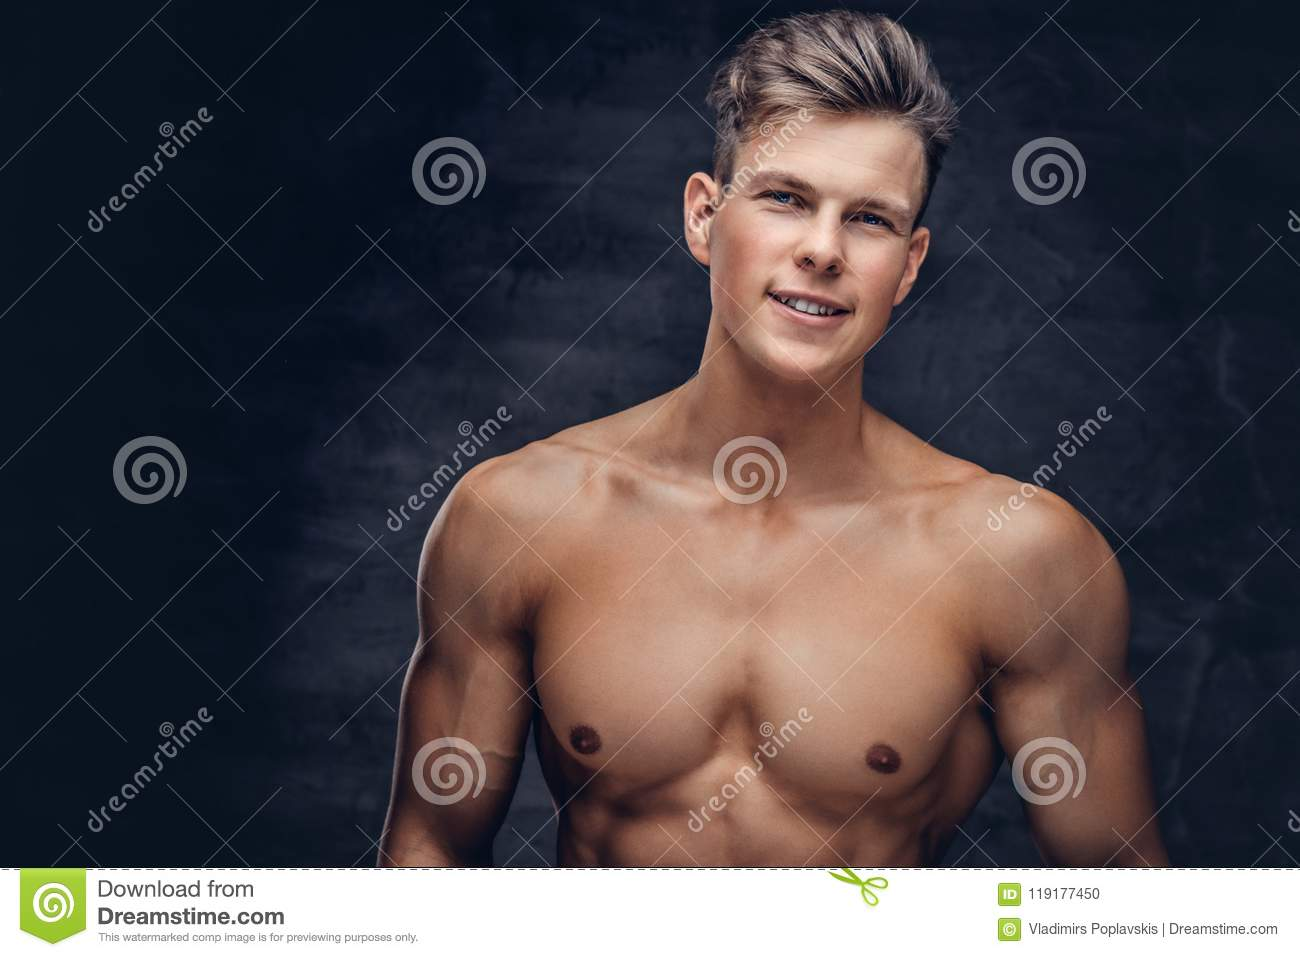 Close-up portrait of a shirtless young man model with a muscular body and stylish haircut posing at a studio